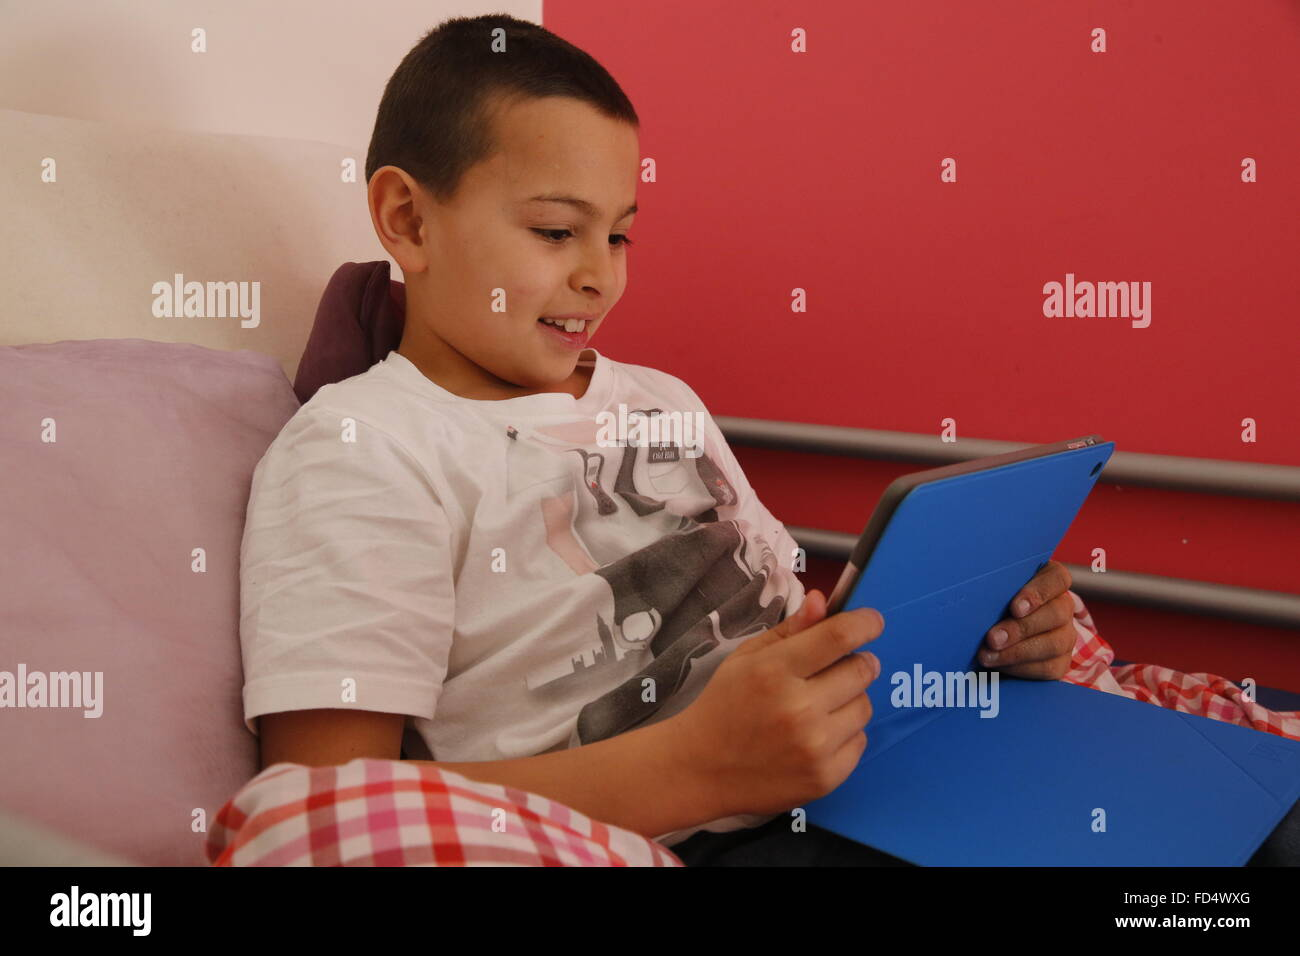 9-year-old boy using a digital tablet in his room. - Stock Image